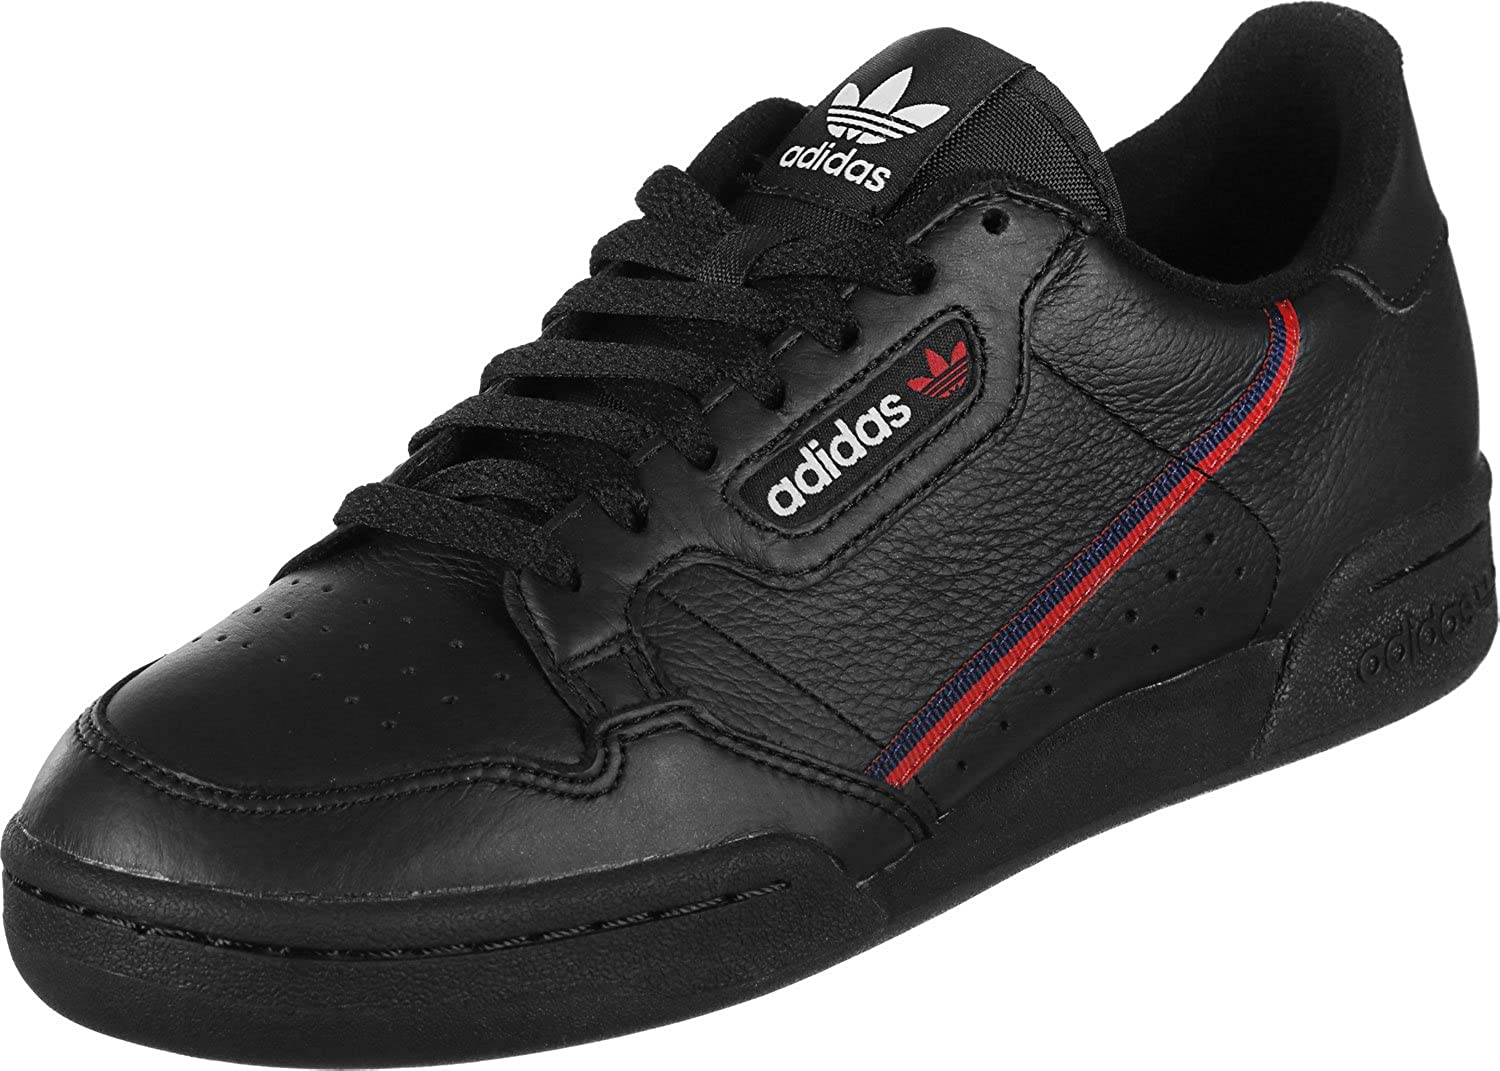 Adidas Continental 80, Chaussures de Gymnastique Homme G27707